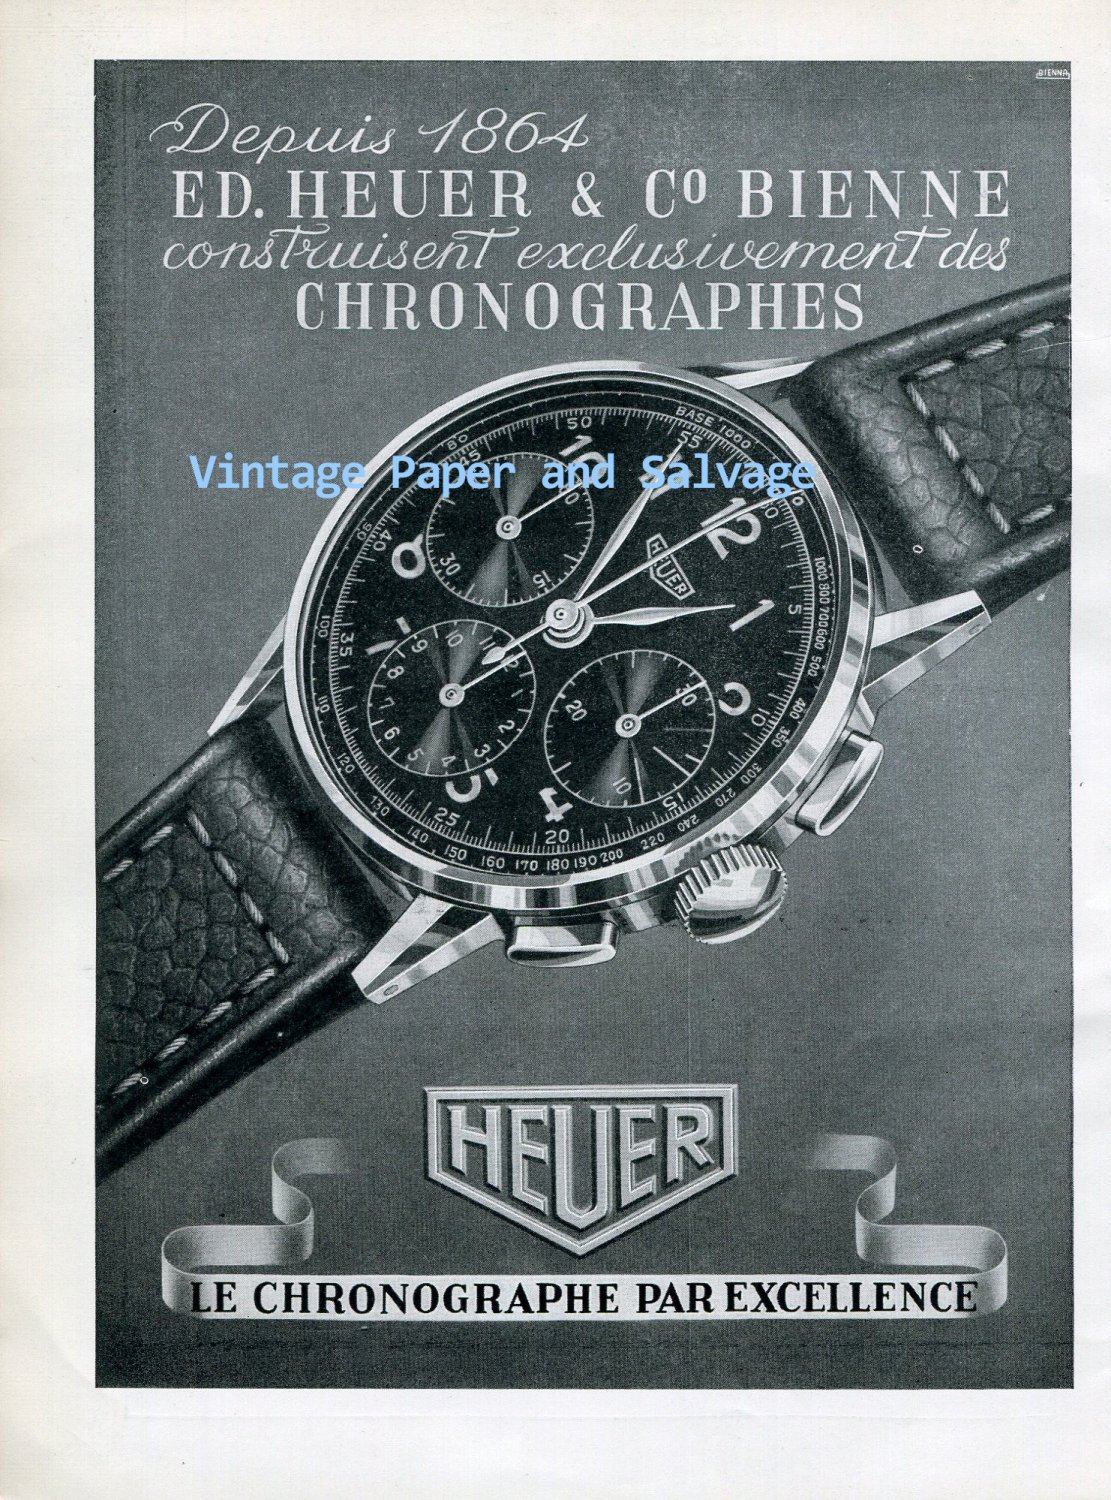 Vintage 1945 Heuer Le Chronographe Par Excellence Heuer Watch Company Swiss Ad Advert Suisse